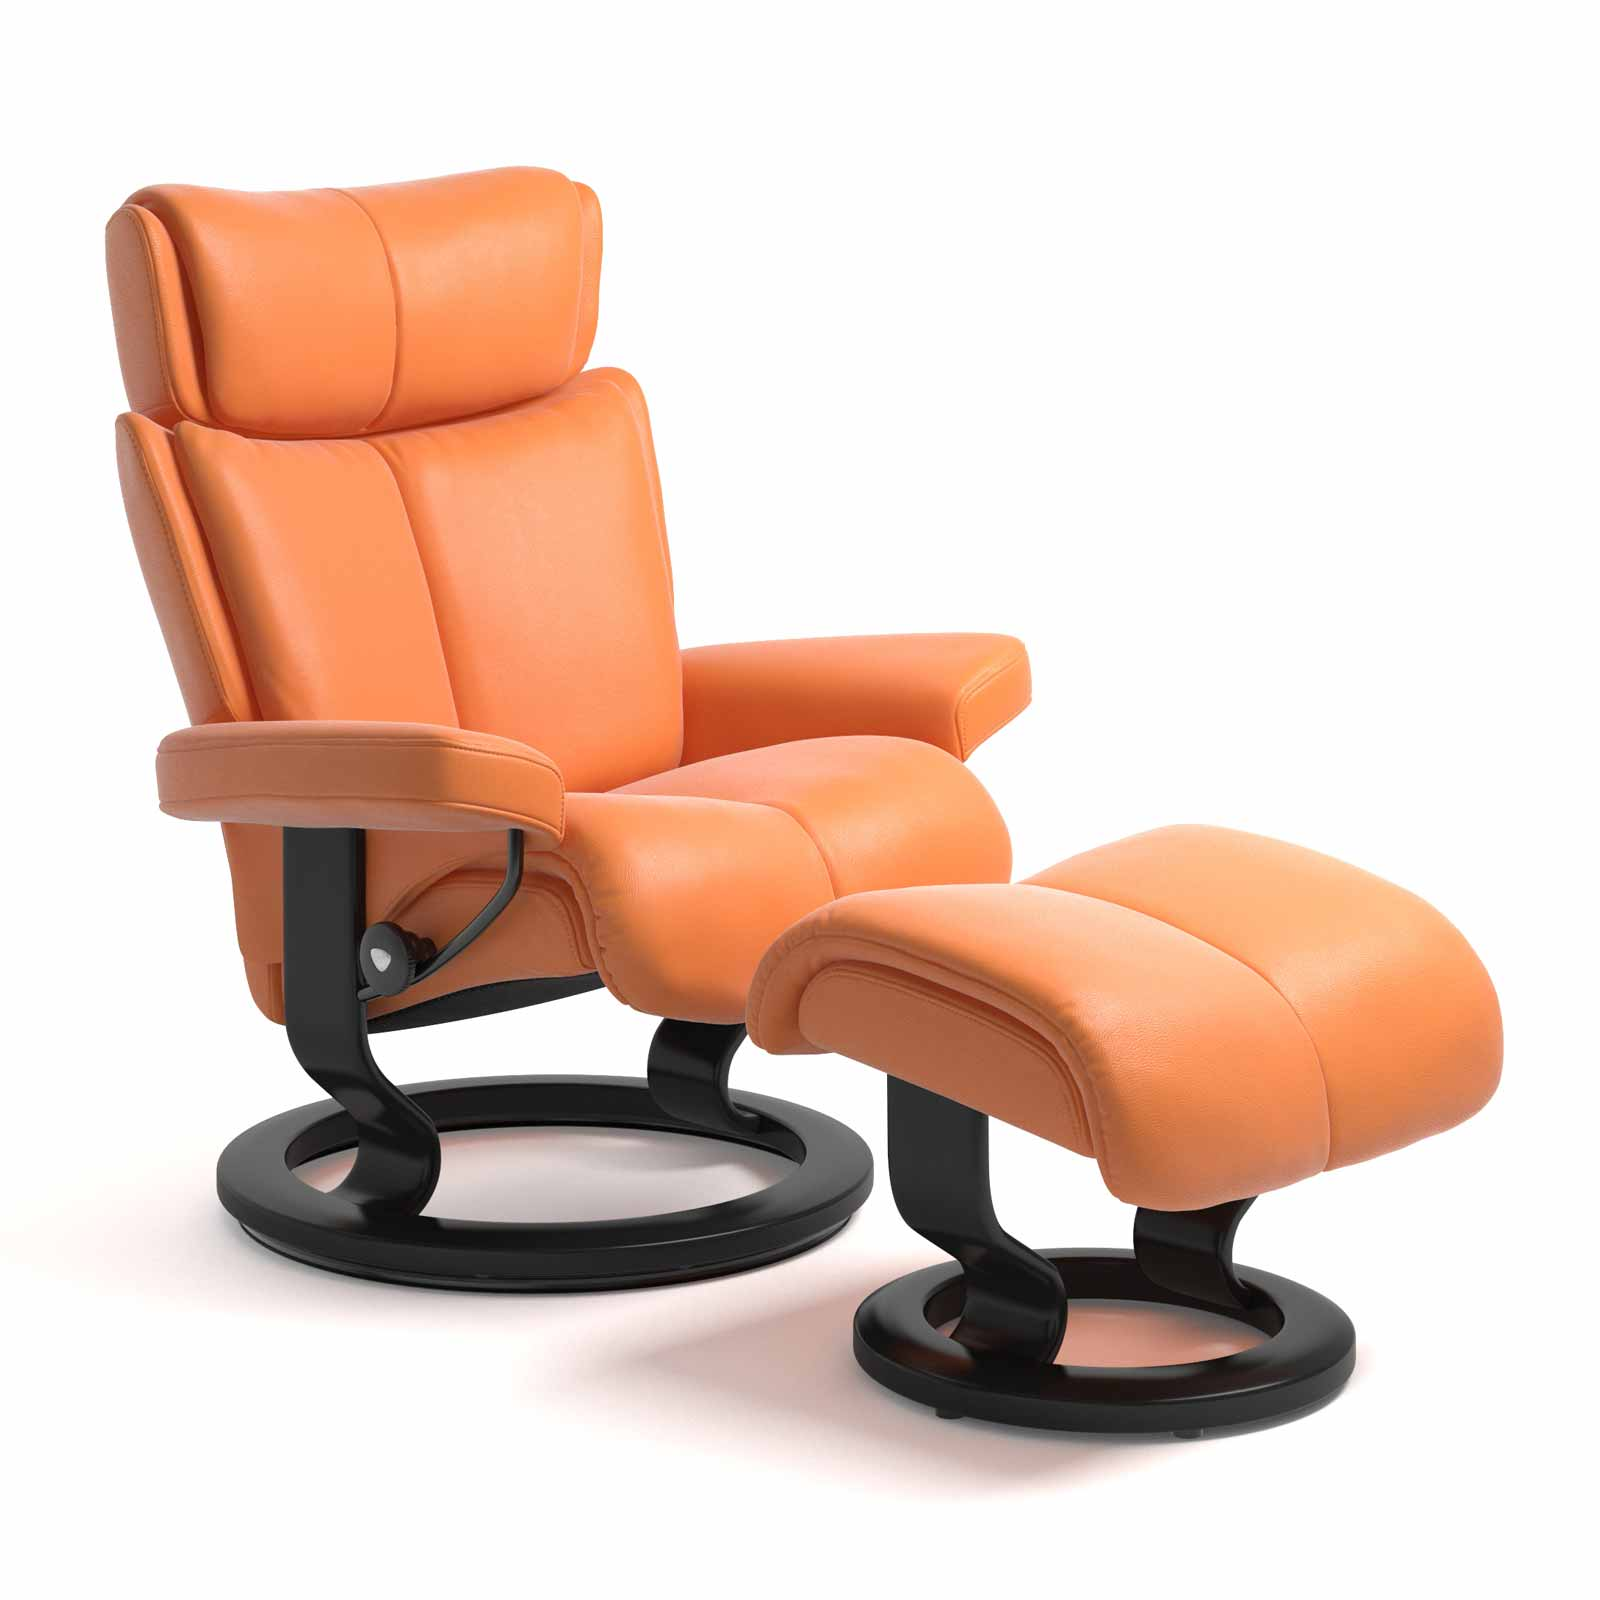 Stressless Sessel Magic Paloma Apricot Orange Mit Hocker Stressless